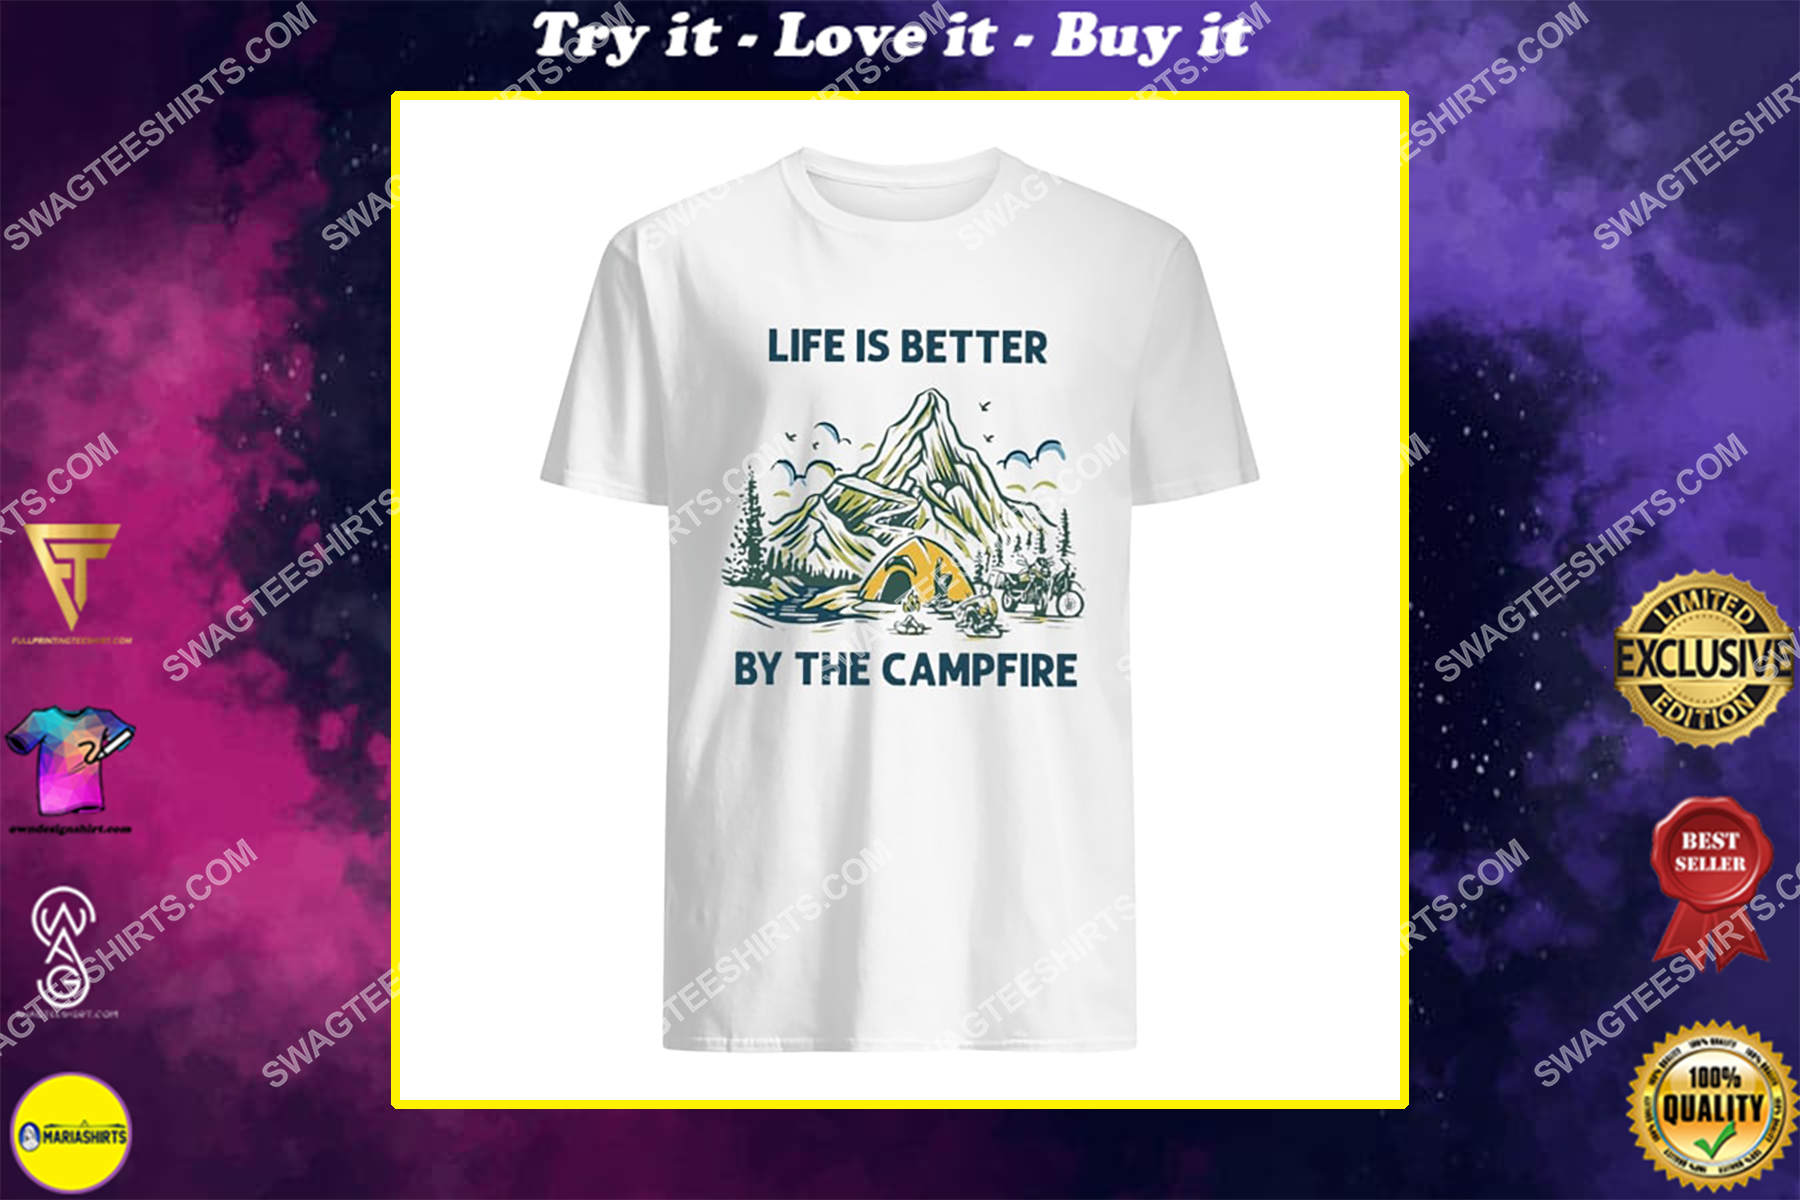 life is better by the campfire for camper shirt